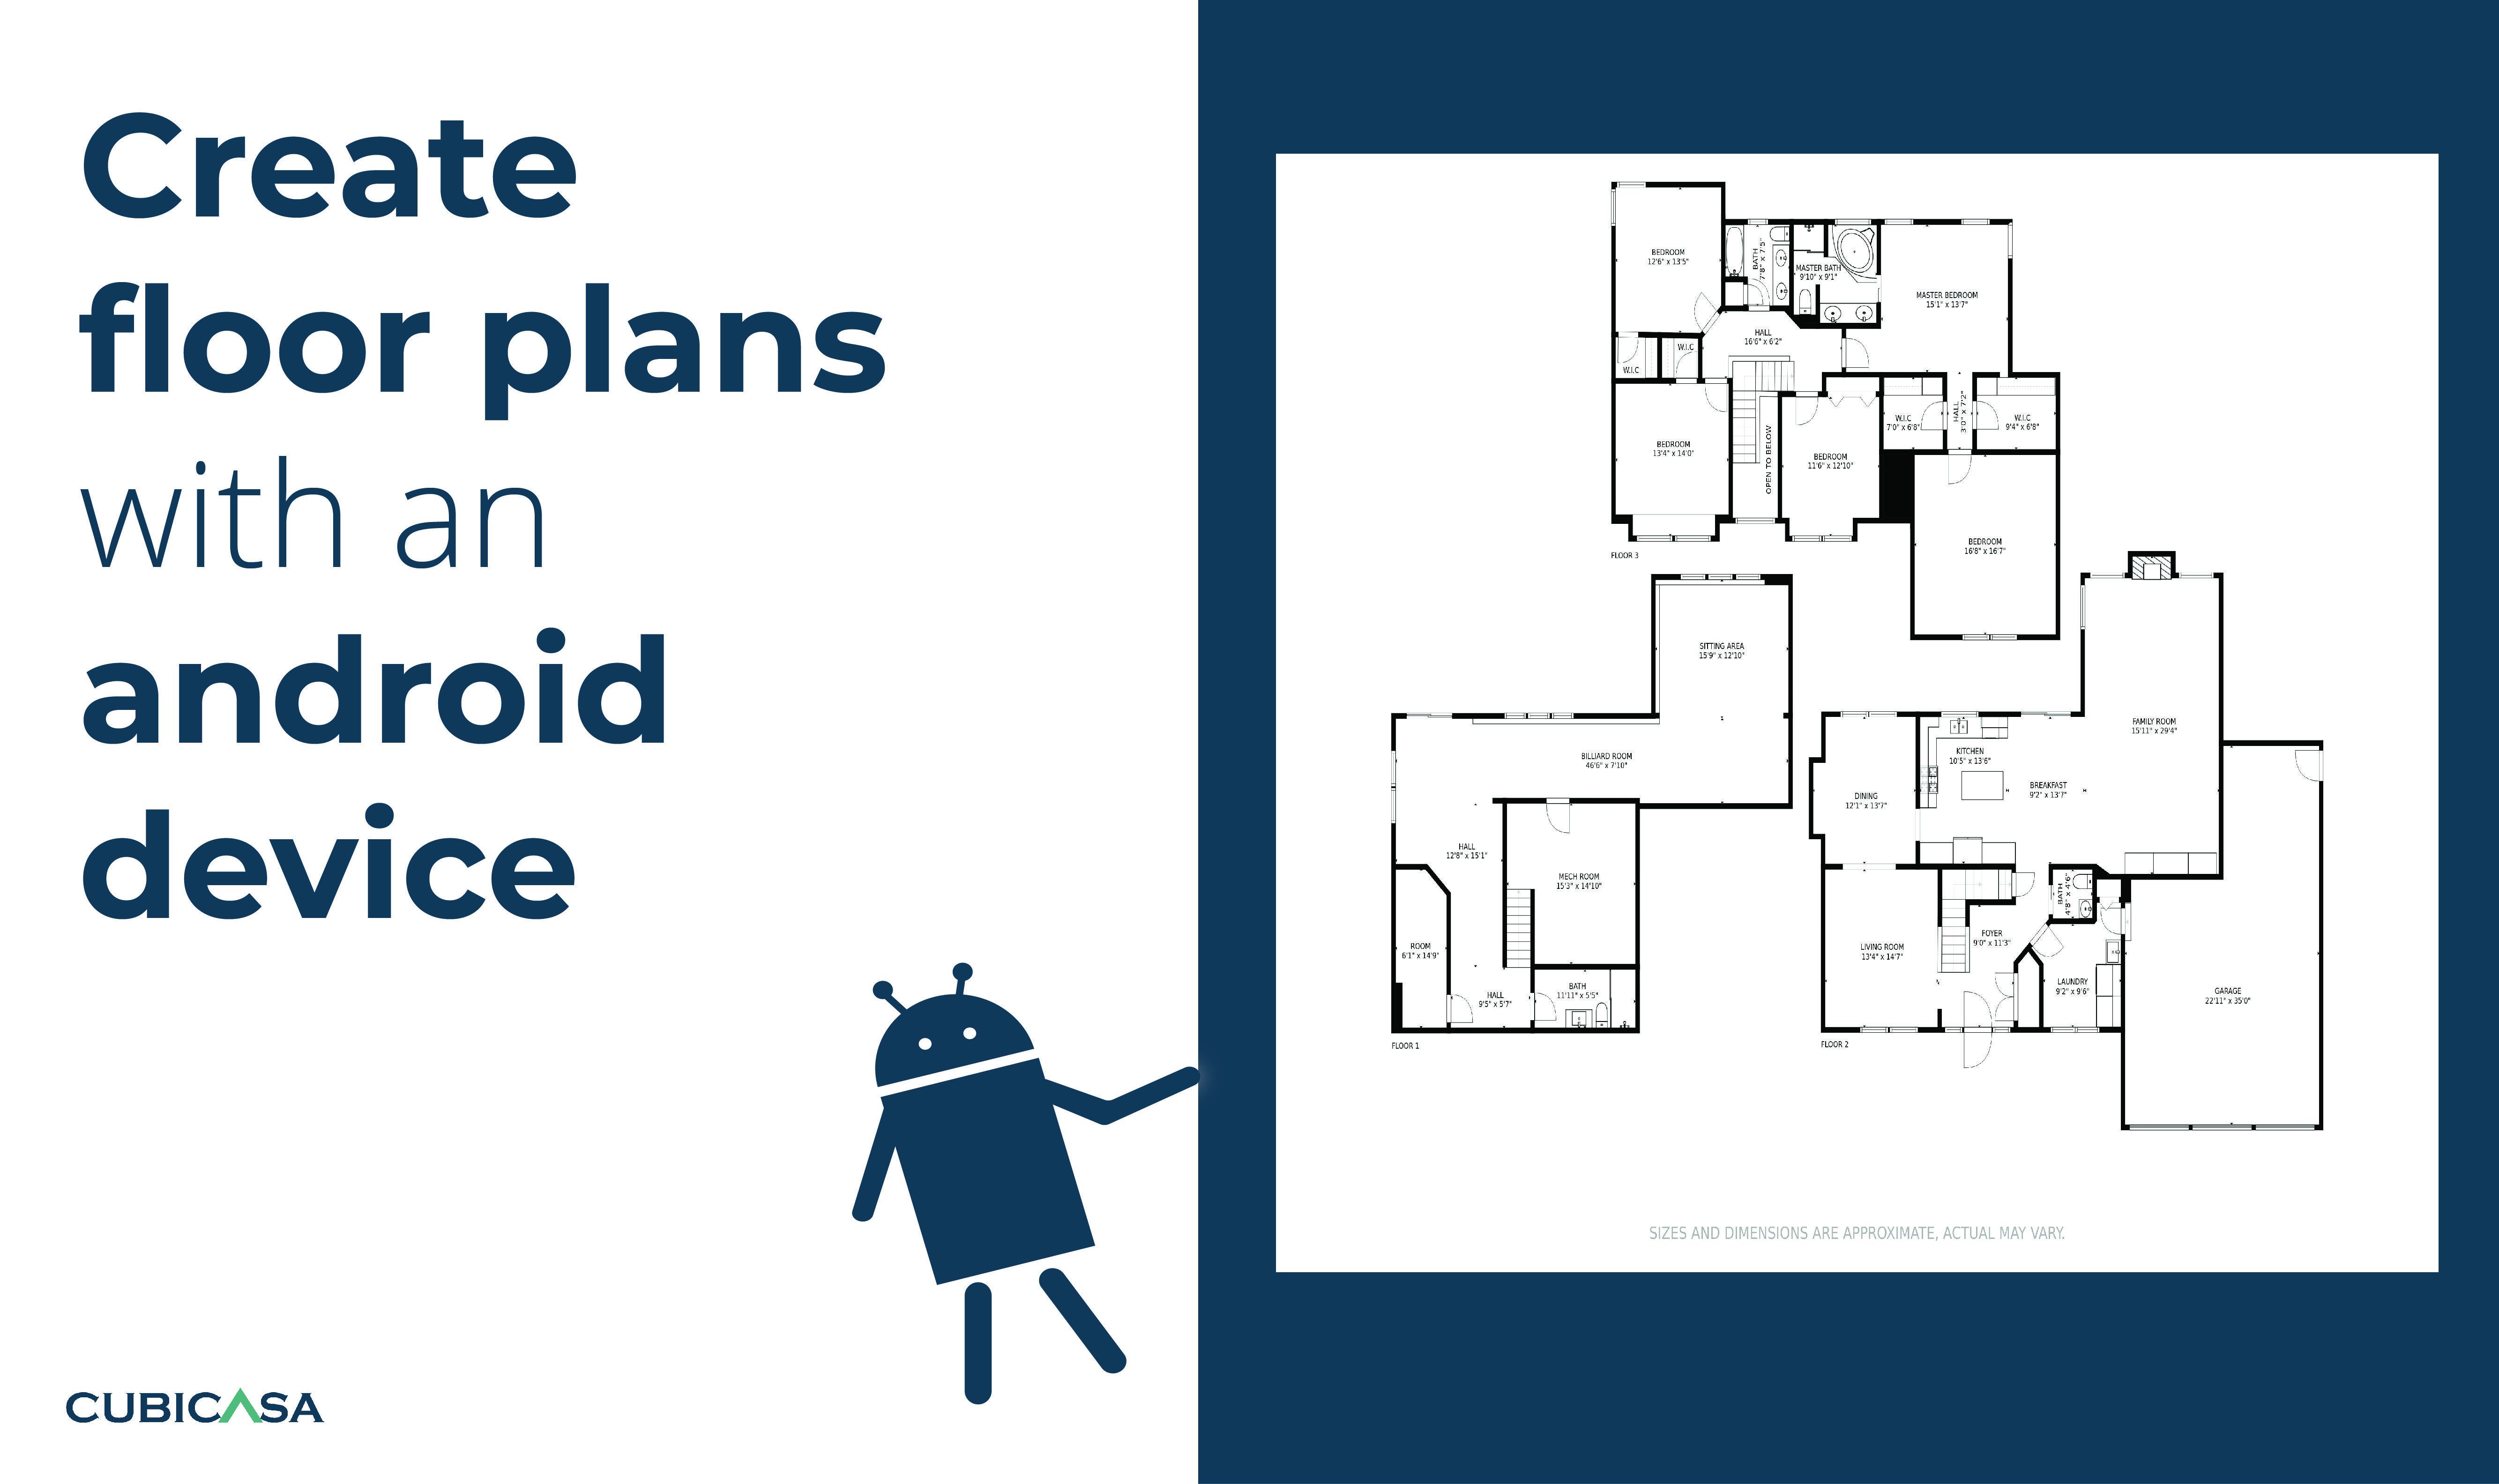 Make Floor Plans With An Android Device In 2020 Create Floor Plan Floor Plans How To Plan